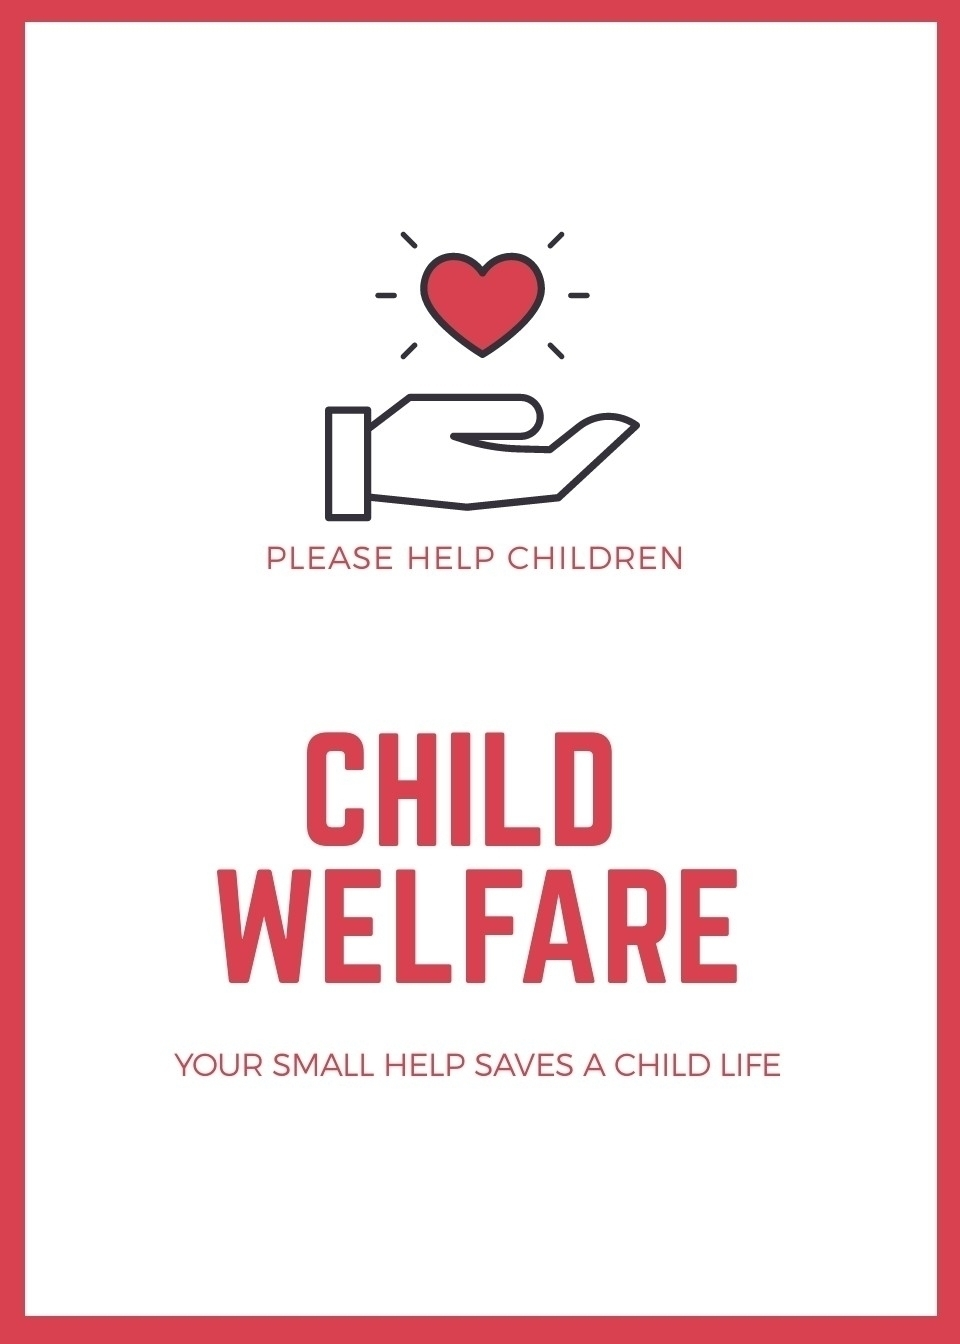 childwelfare (@childwelfare) Cover Image